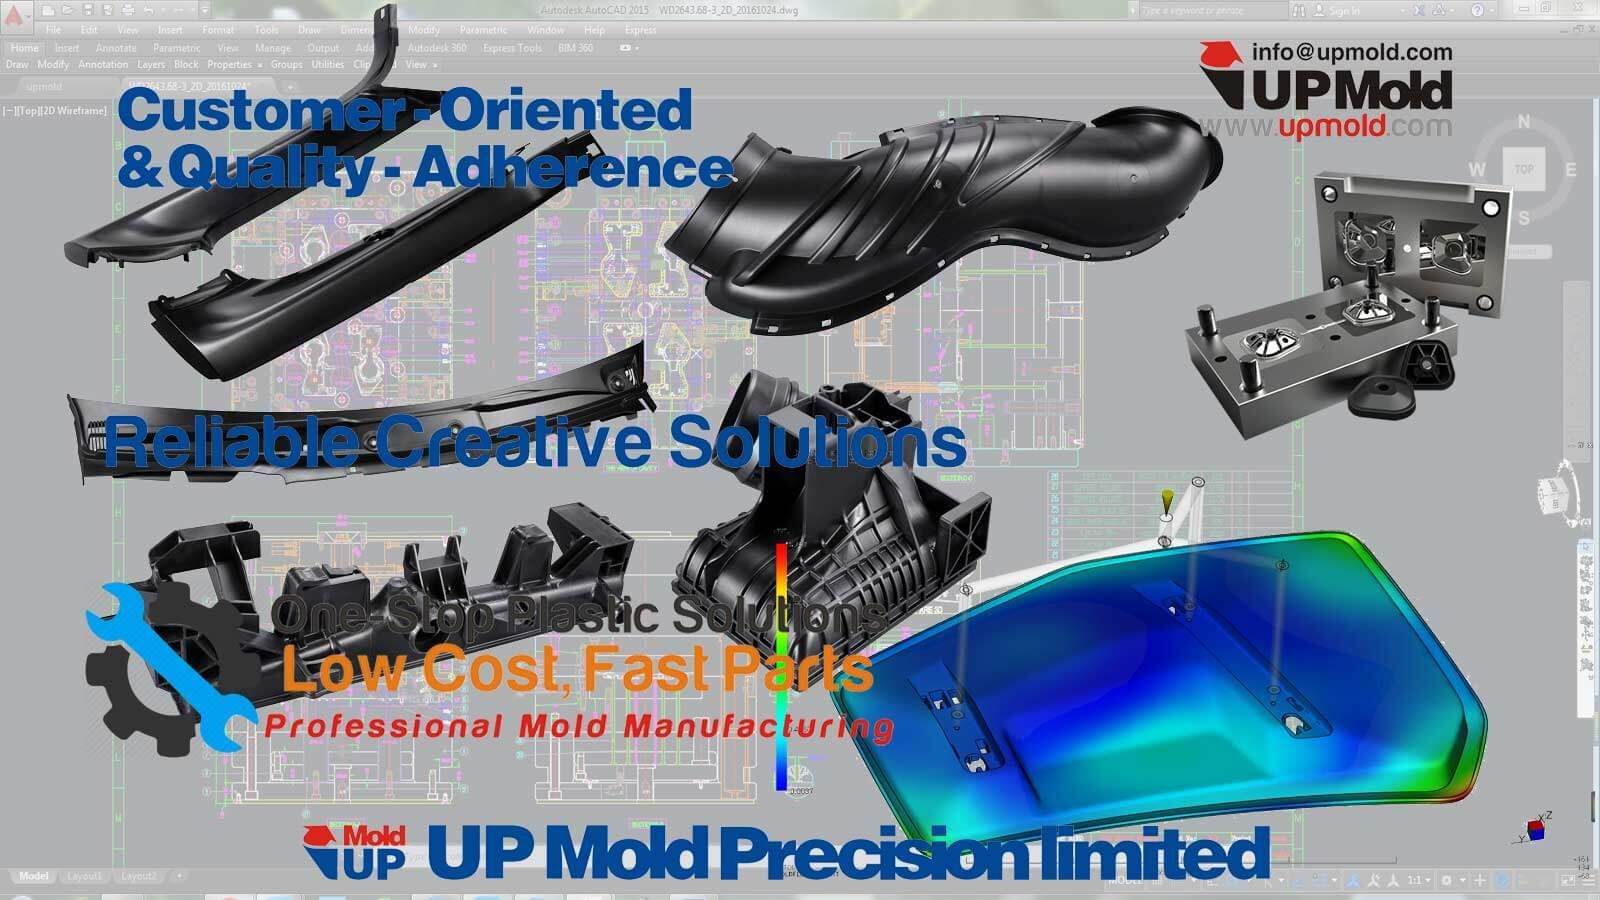 Plastic Injection Mold, Part Design, Engineering Support, Injection  Molding, Tool Building In House And Casting As Well. One Stop Shopping  Solutions   ...